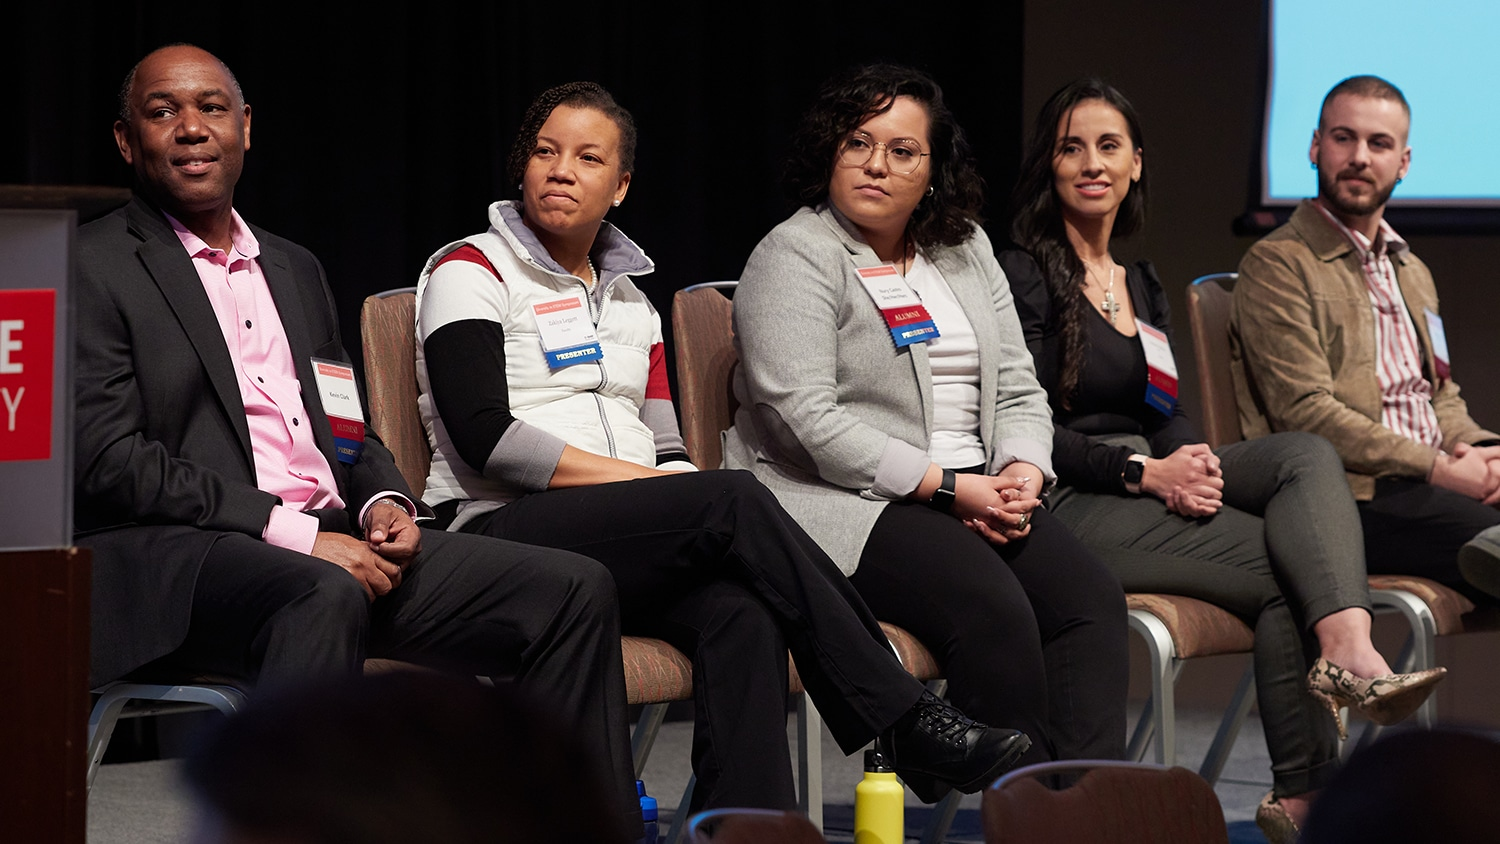 Five panelists at a symposium event sit on stage